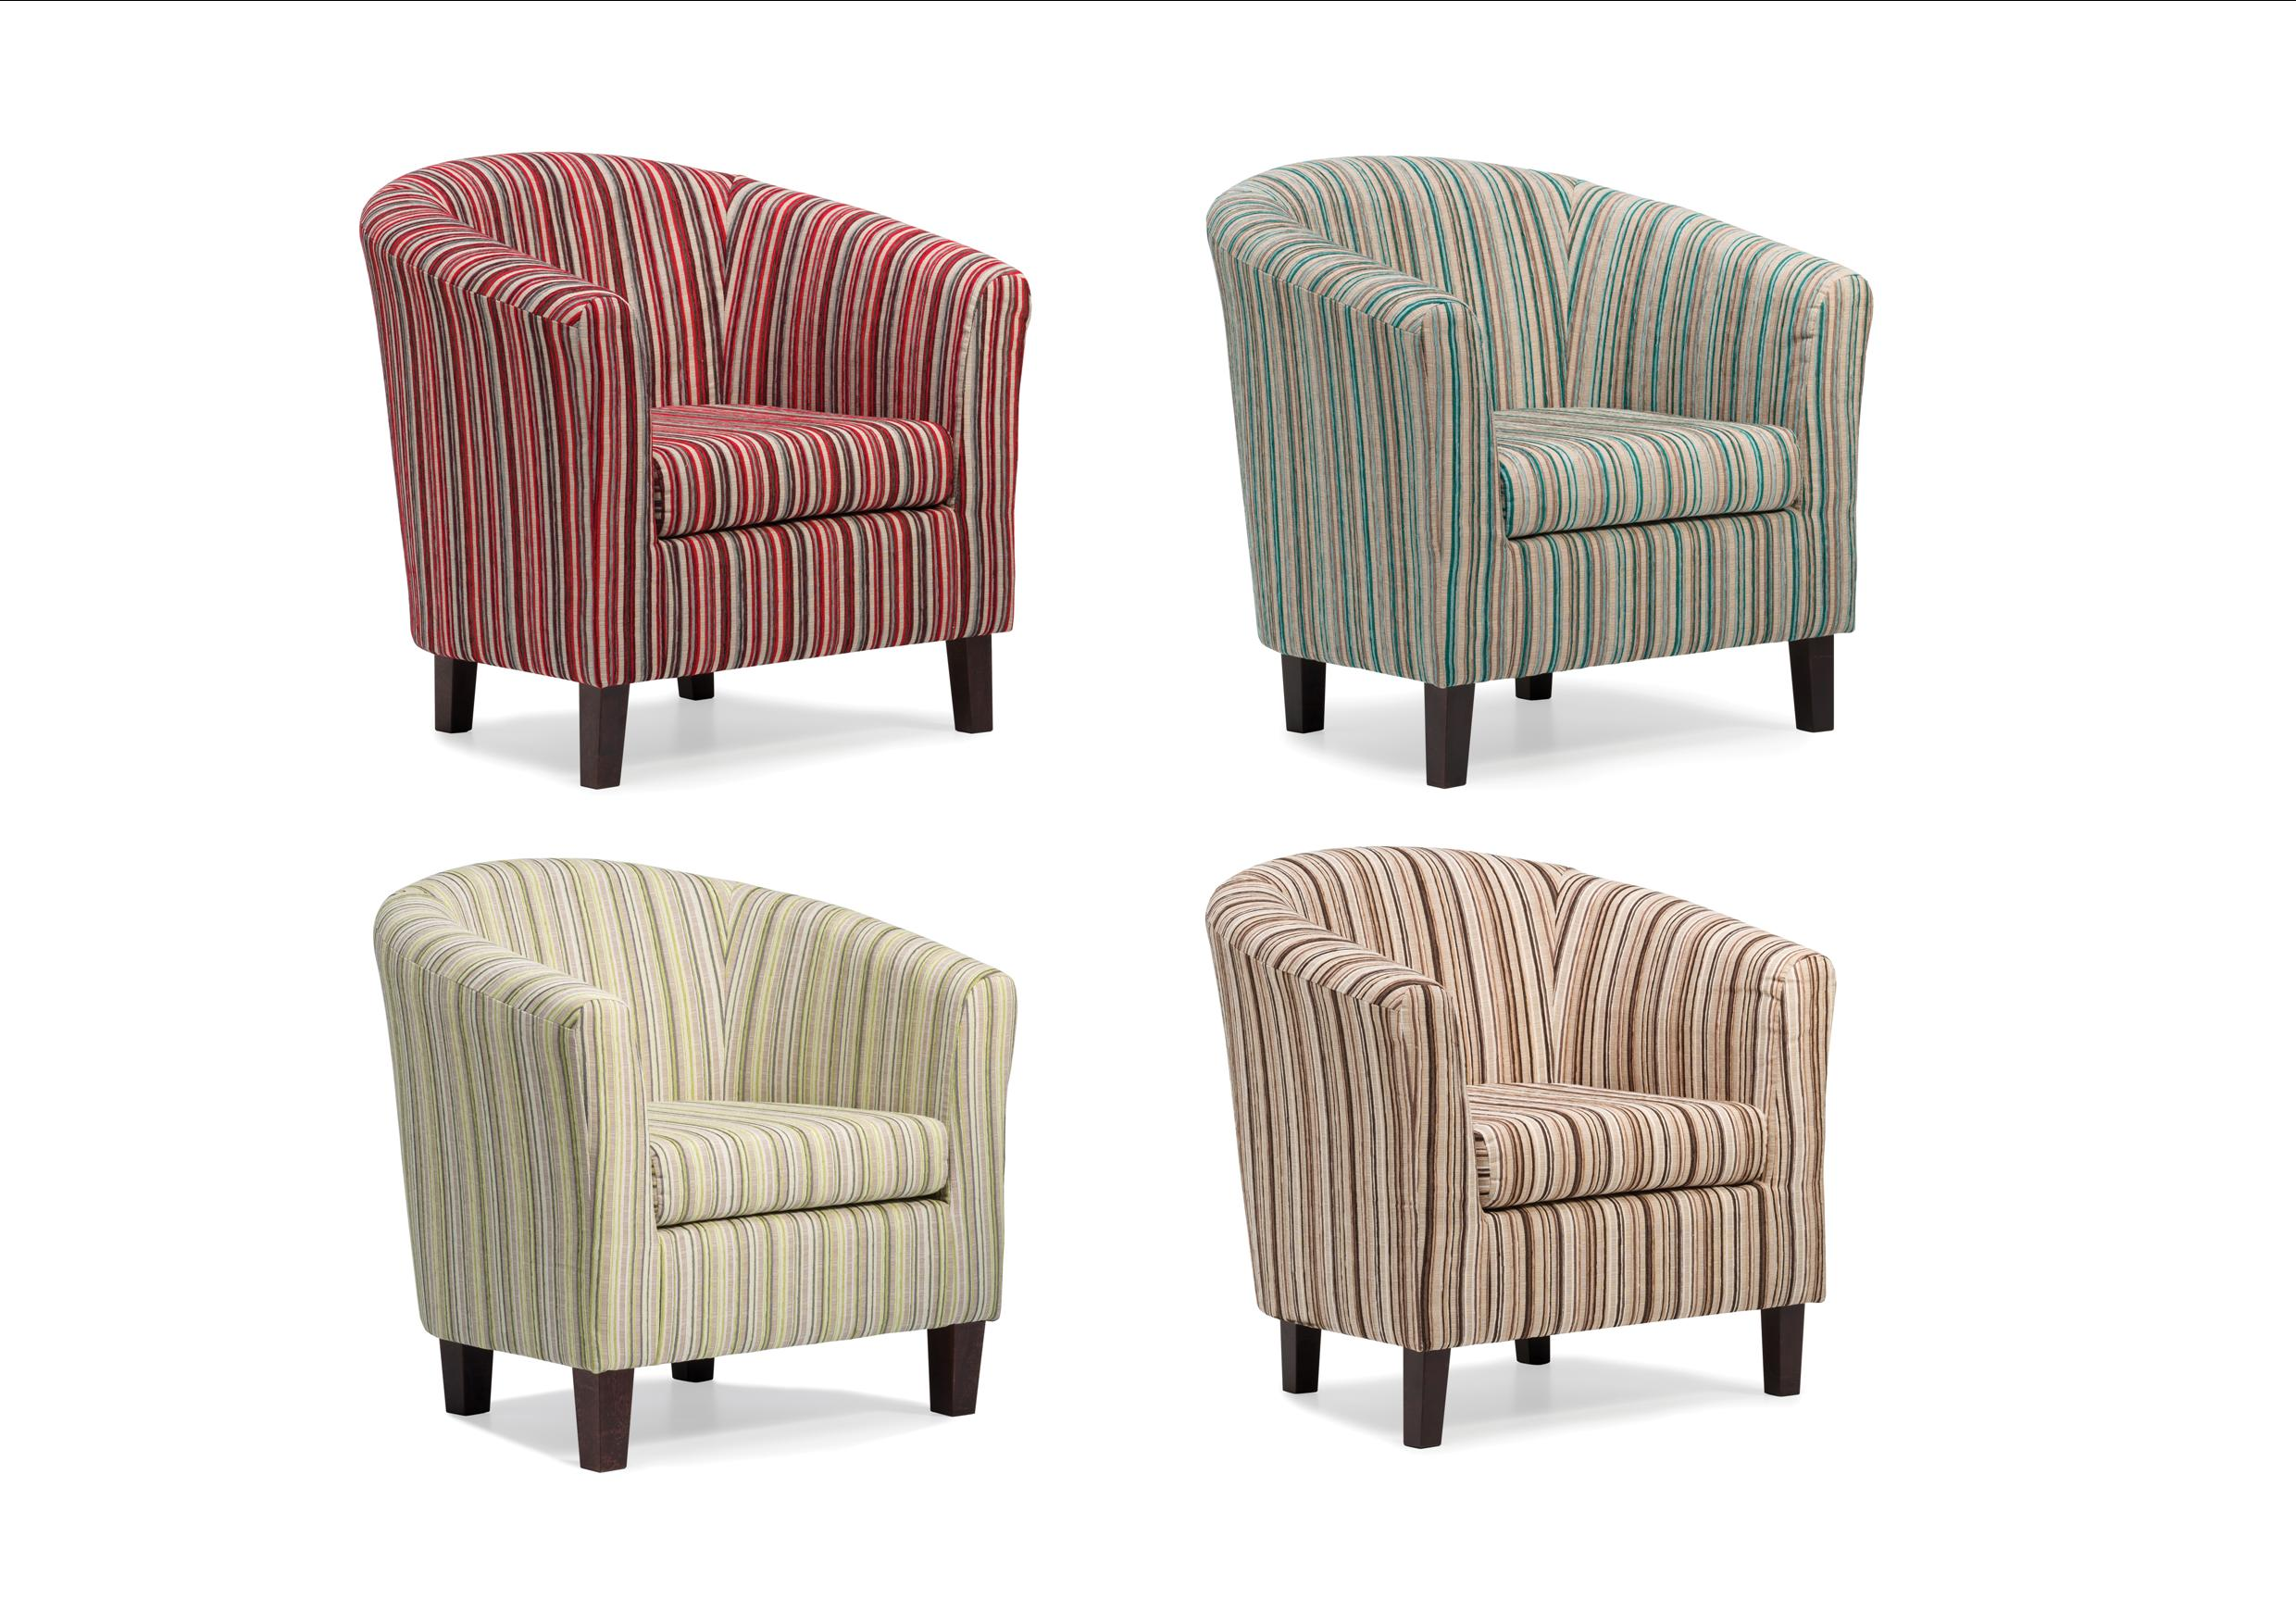 Dorset Stripe Tub Chair Available in Red Chocolate Lime or